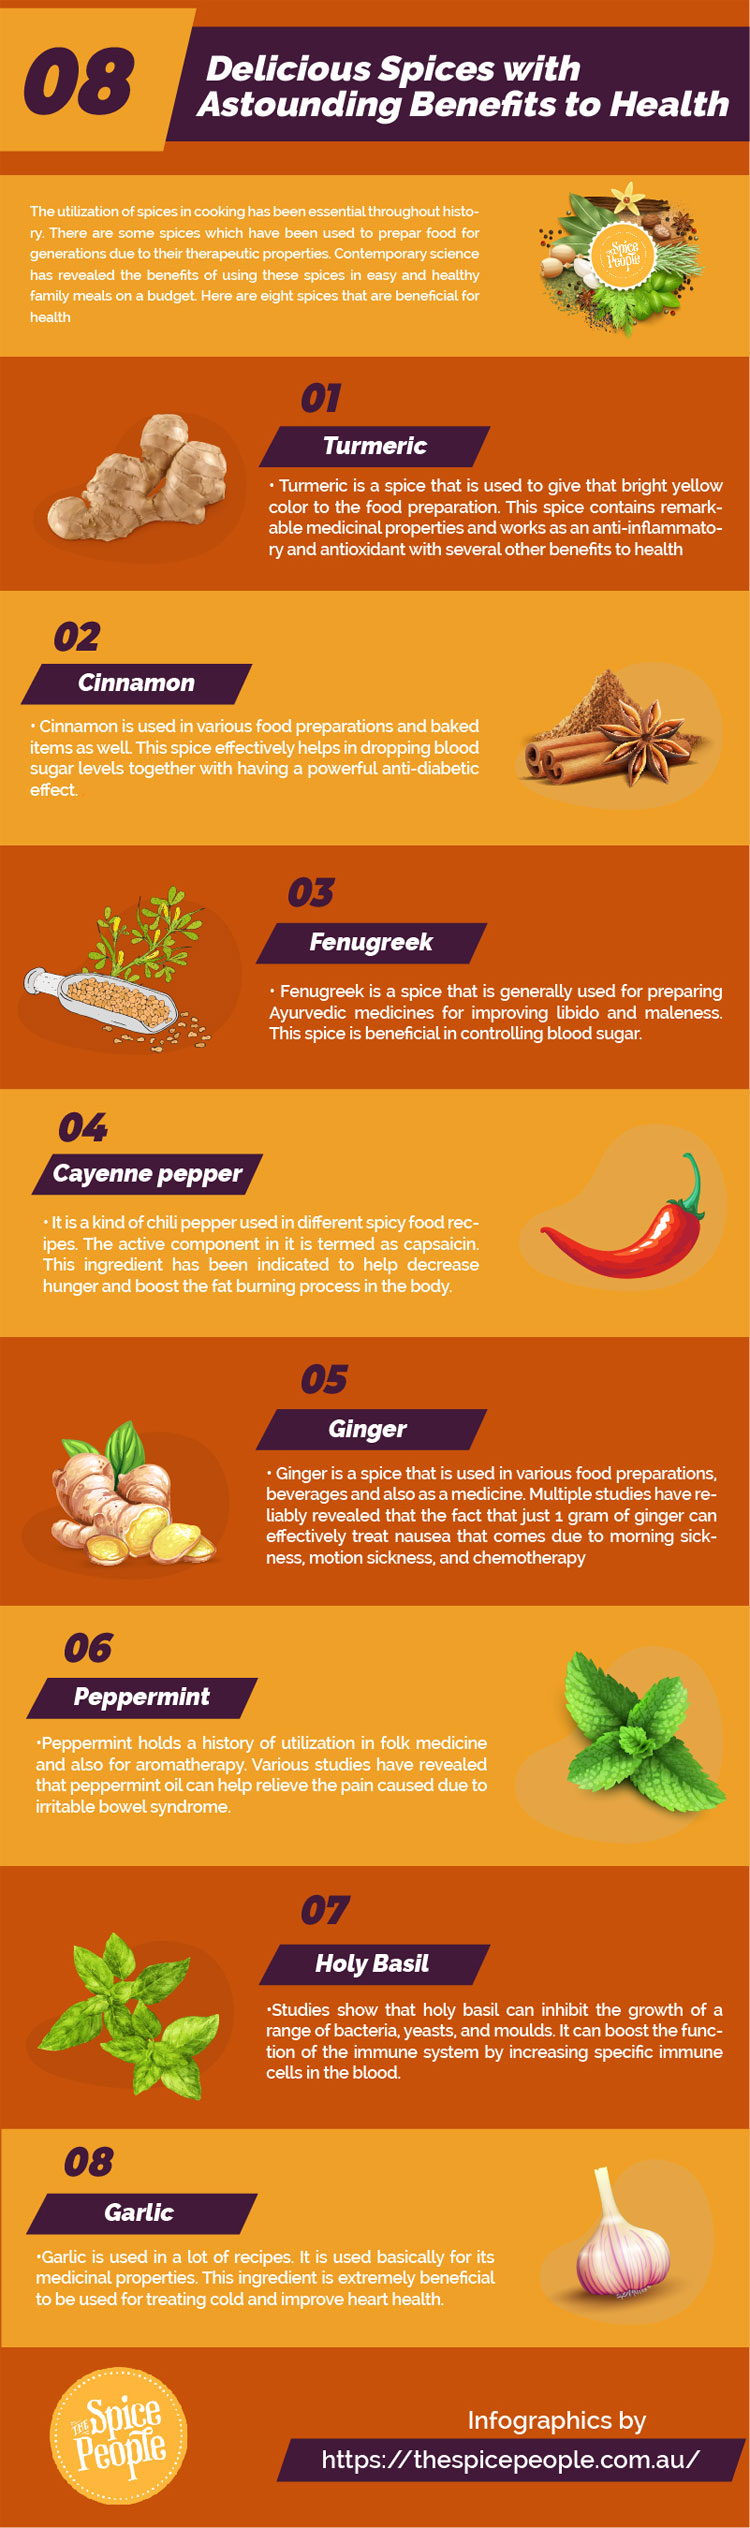 8 Delicious Spices With Astounding Benefits To Health